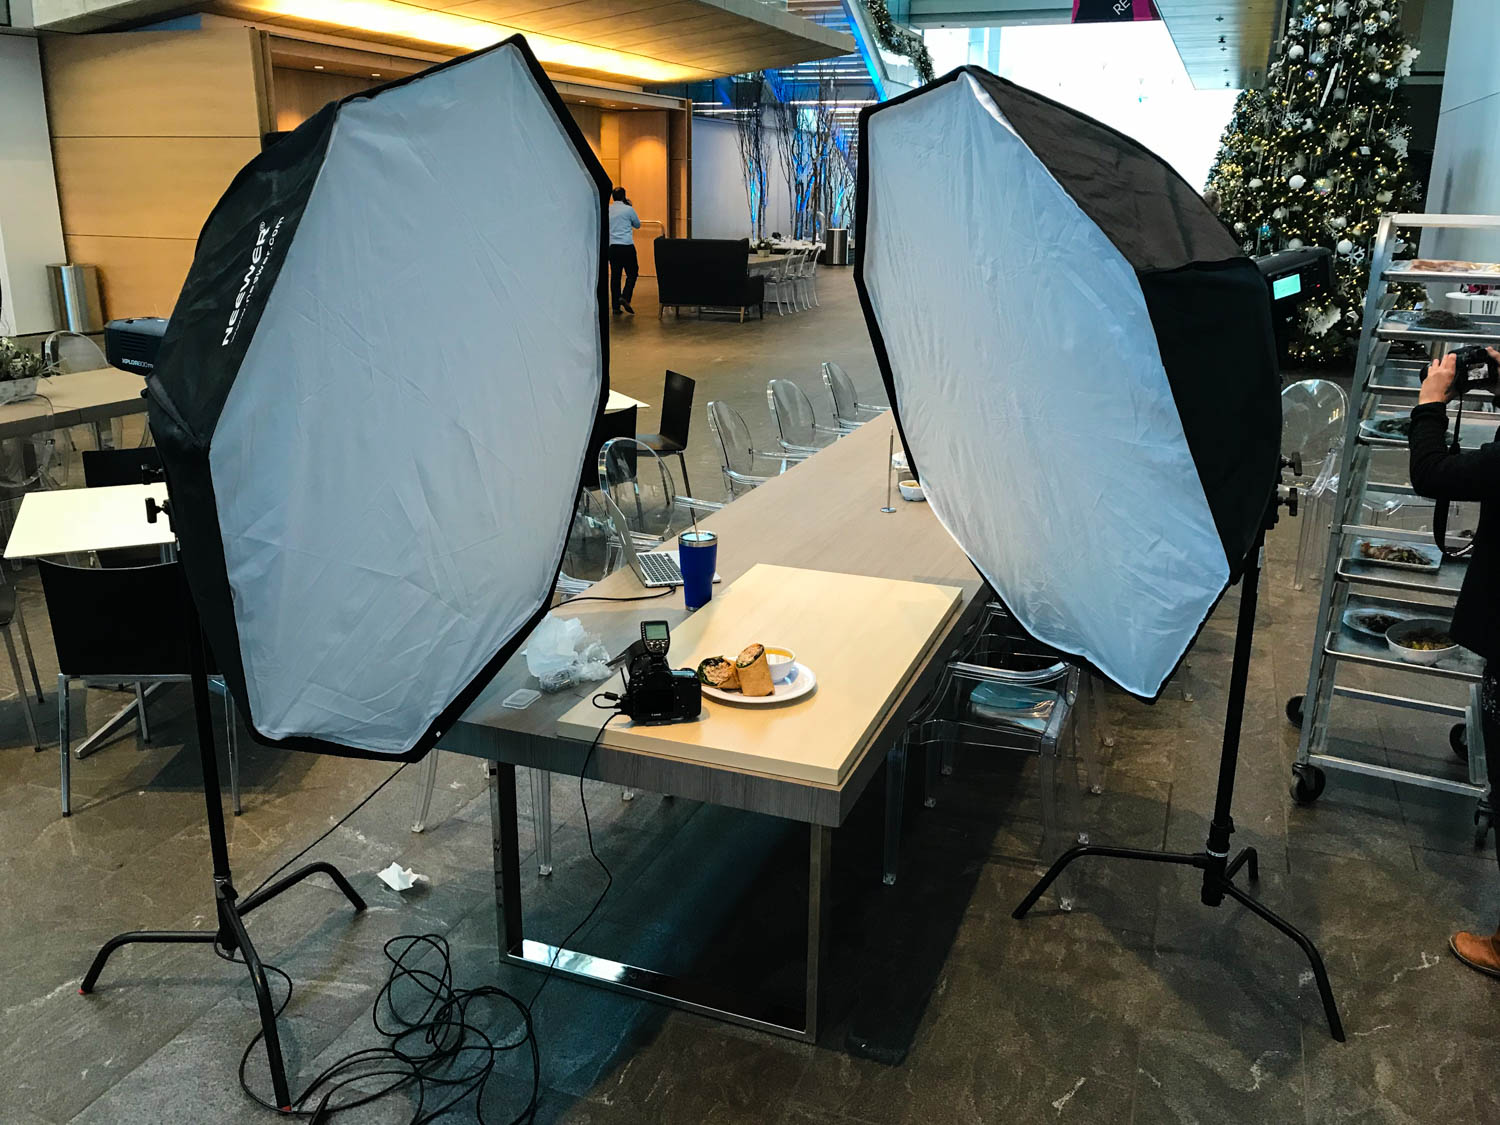 Behind the scenes of the food photo shoot